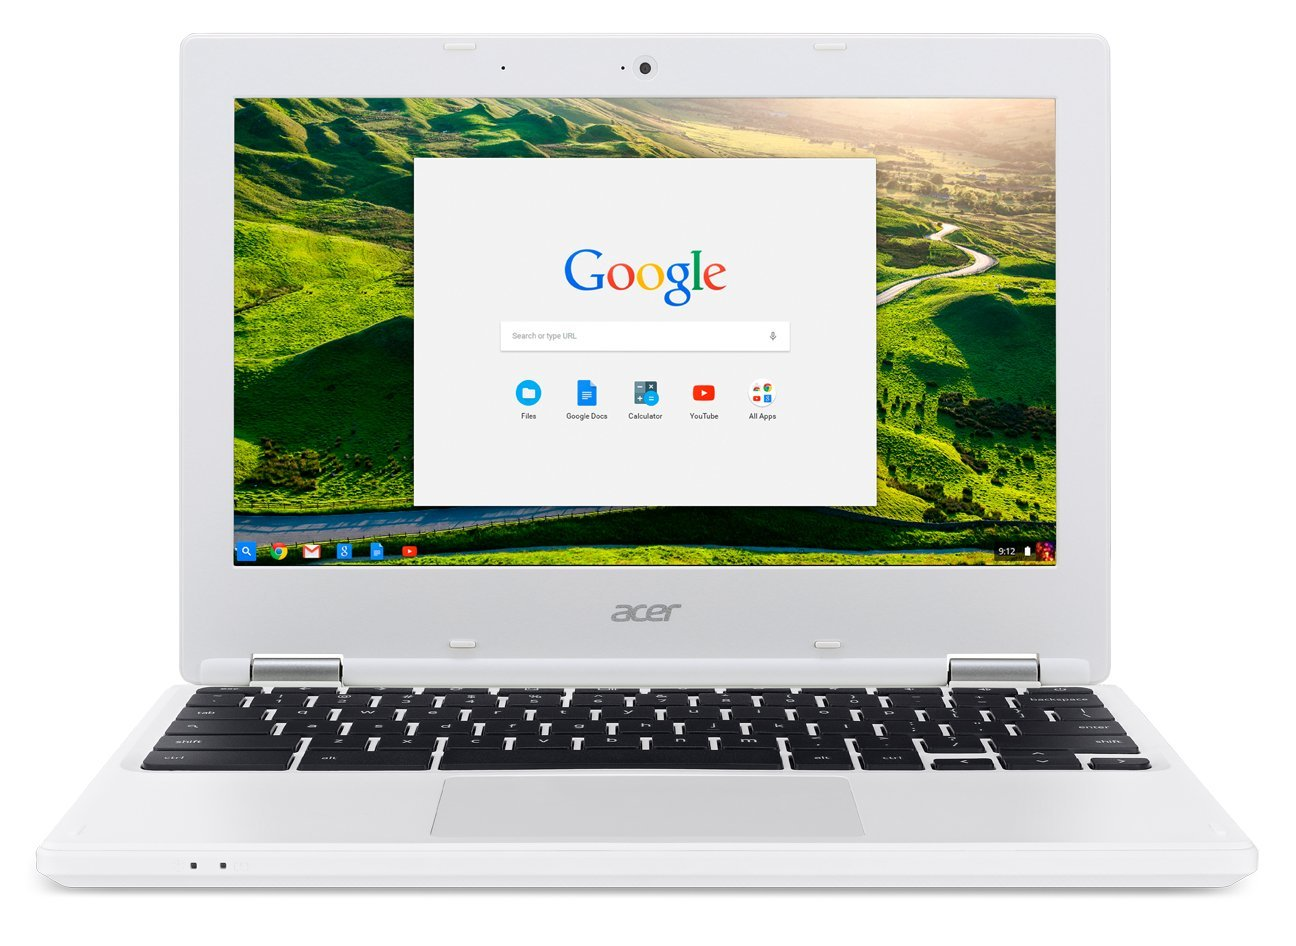 Acer Chromebook 11 - Great for Content Consumption, Productivity, Fun